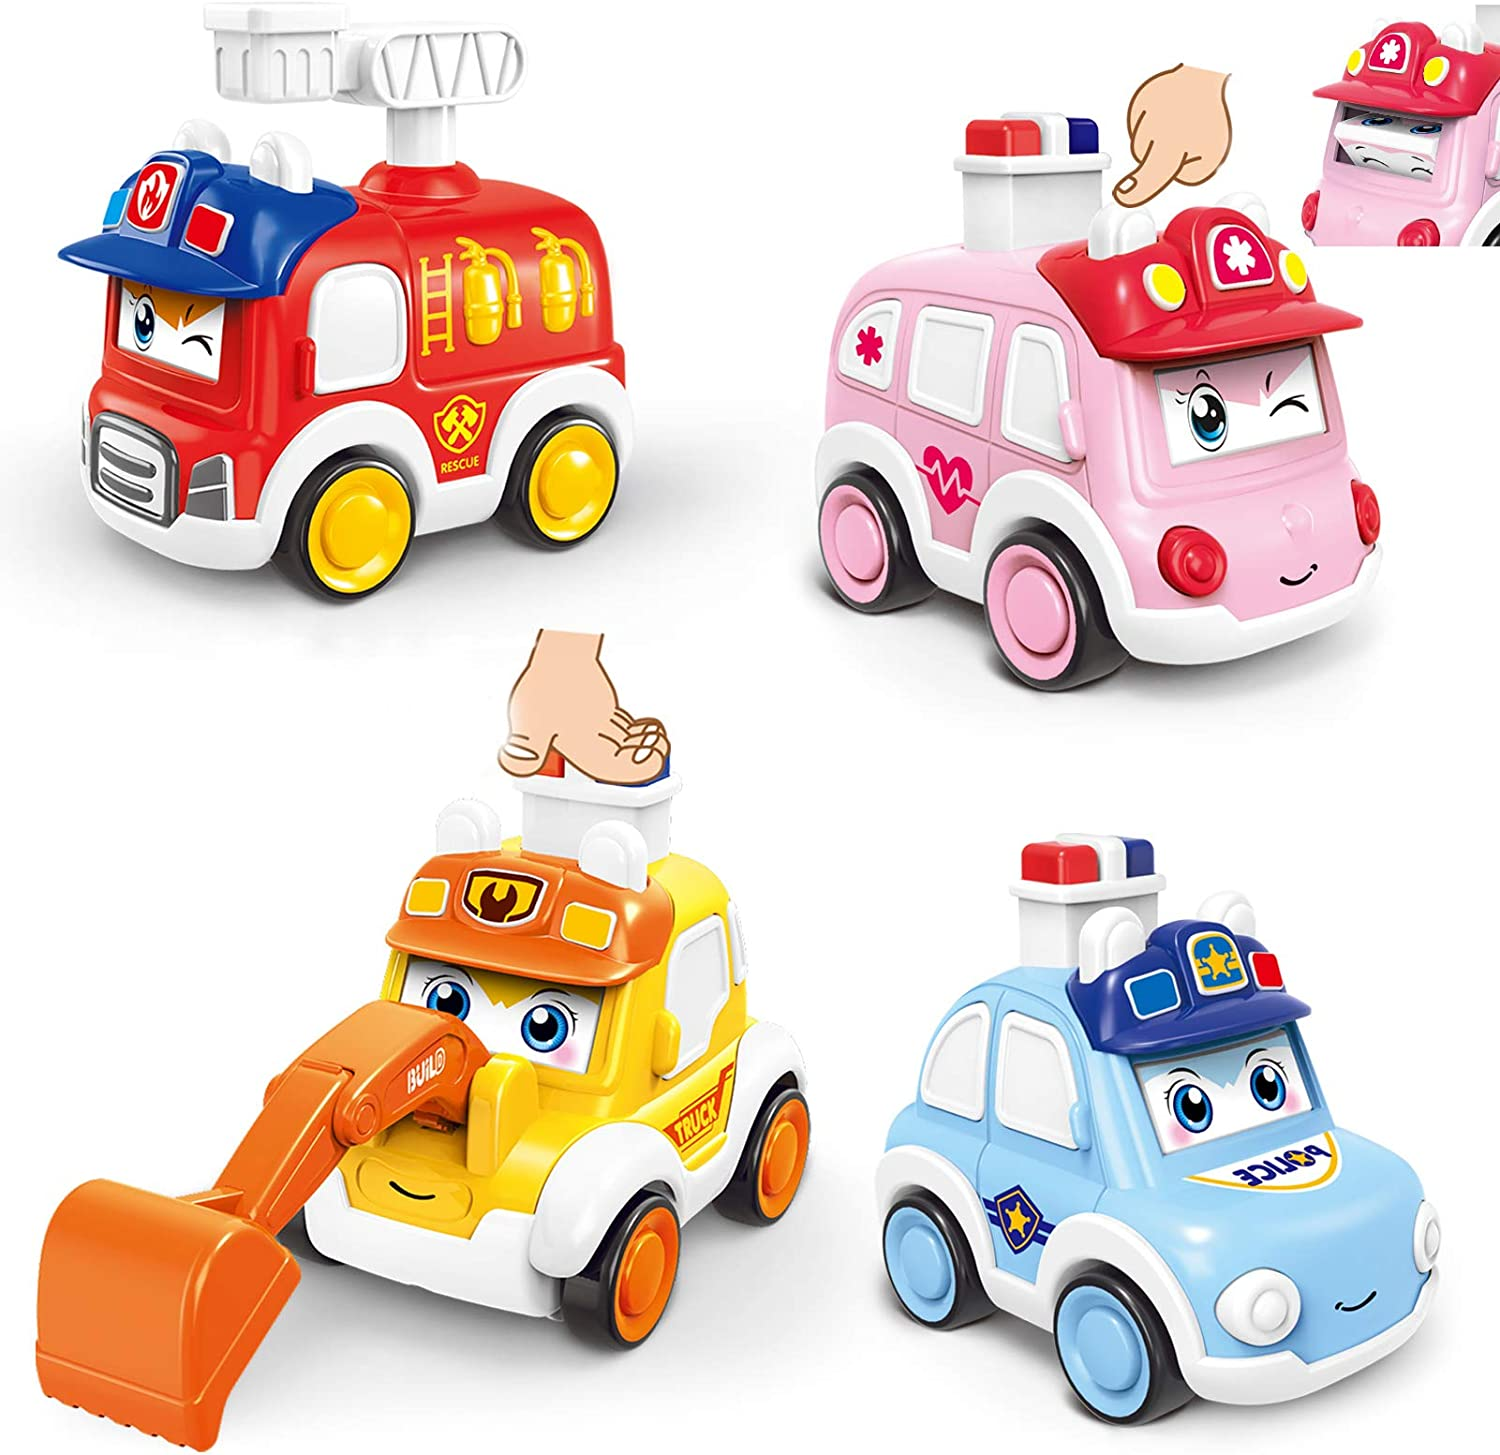 ZMZS Baby Cars Toy for 3 Year Go Ranking TOP1 Toddler Push Old Boy Wind New product! New type